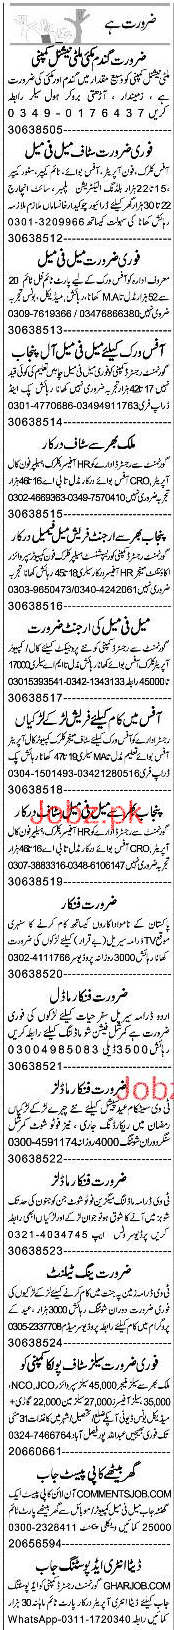 Office Clerks, Telephone Operators, Time Keepers Wanted